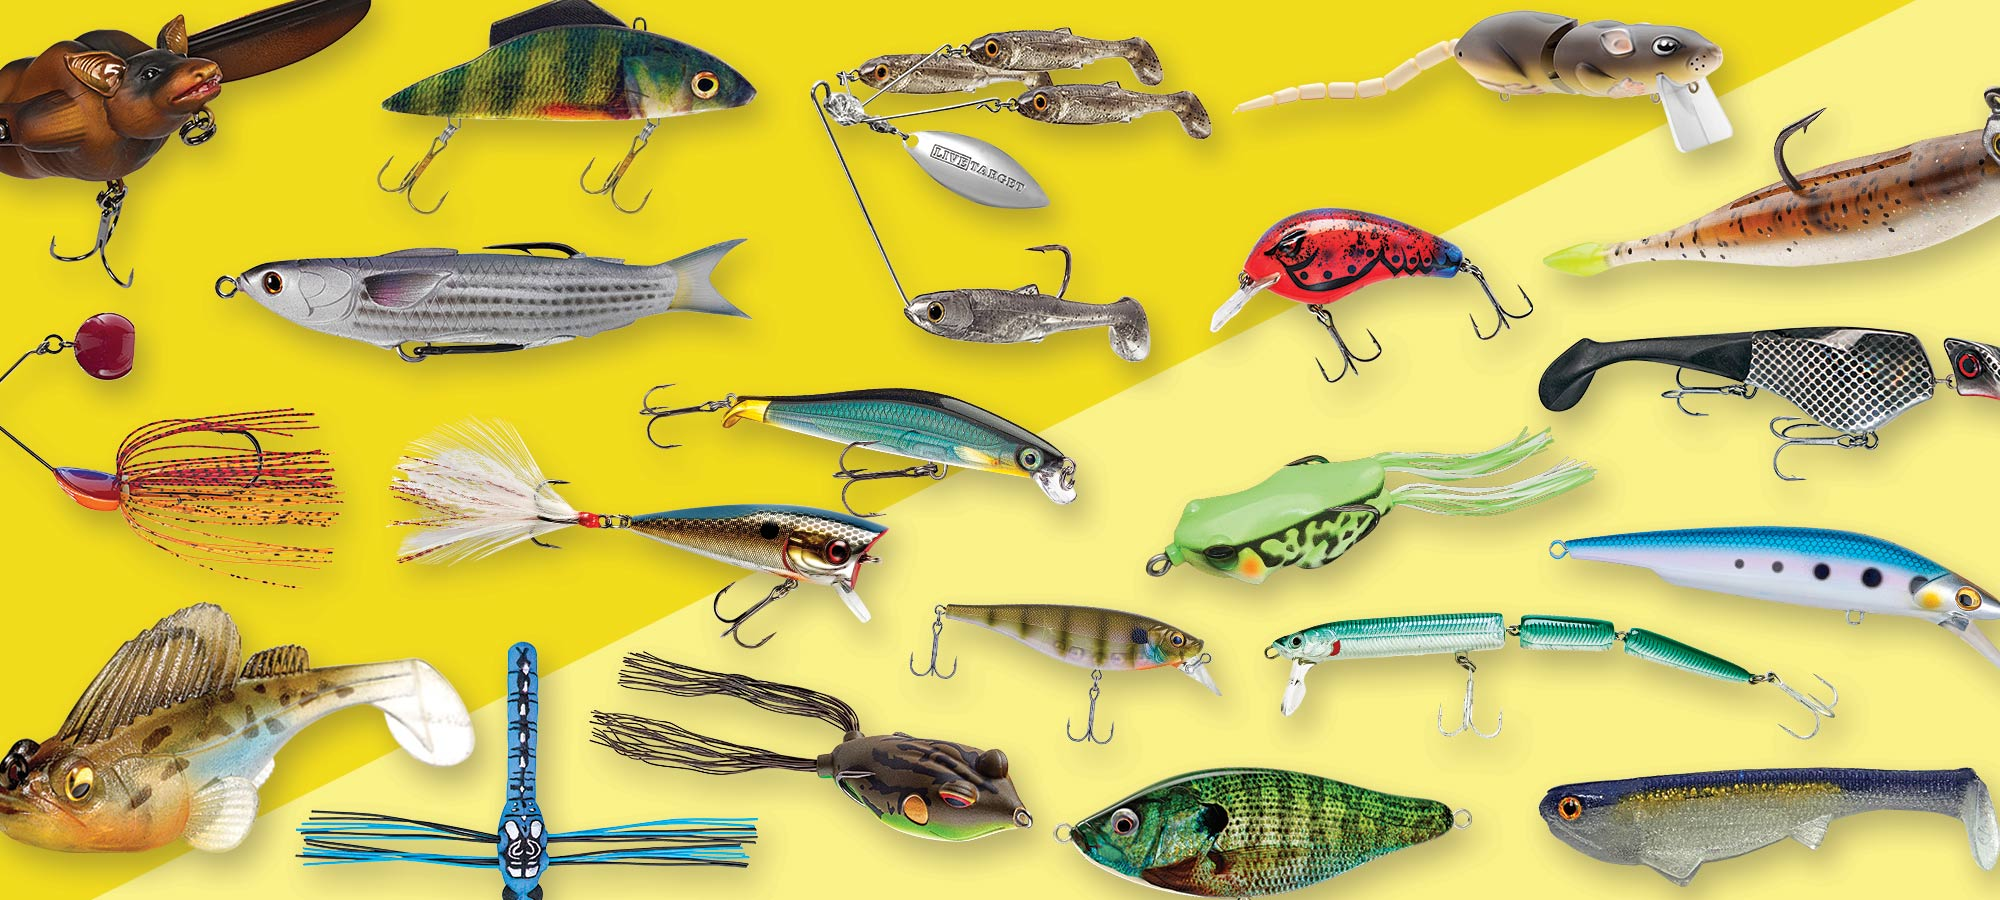 The Best Fishing Lures of 2018